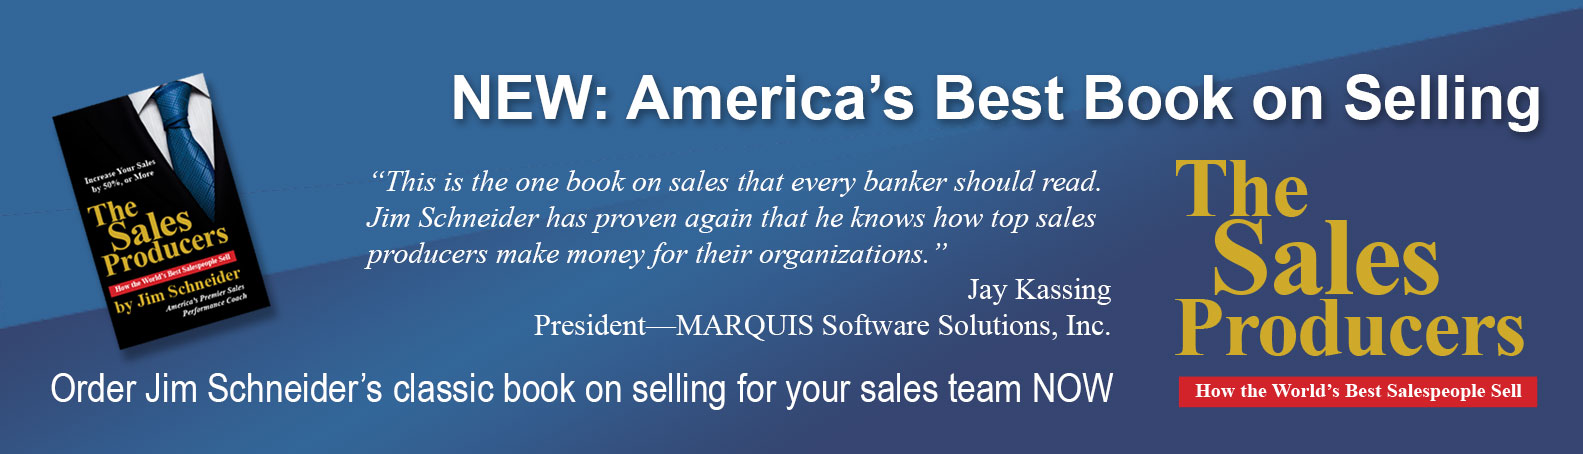 bank sales training book